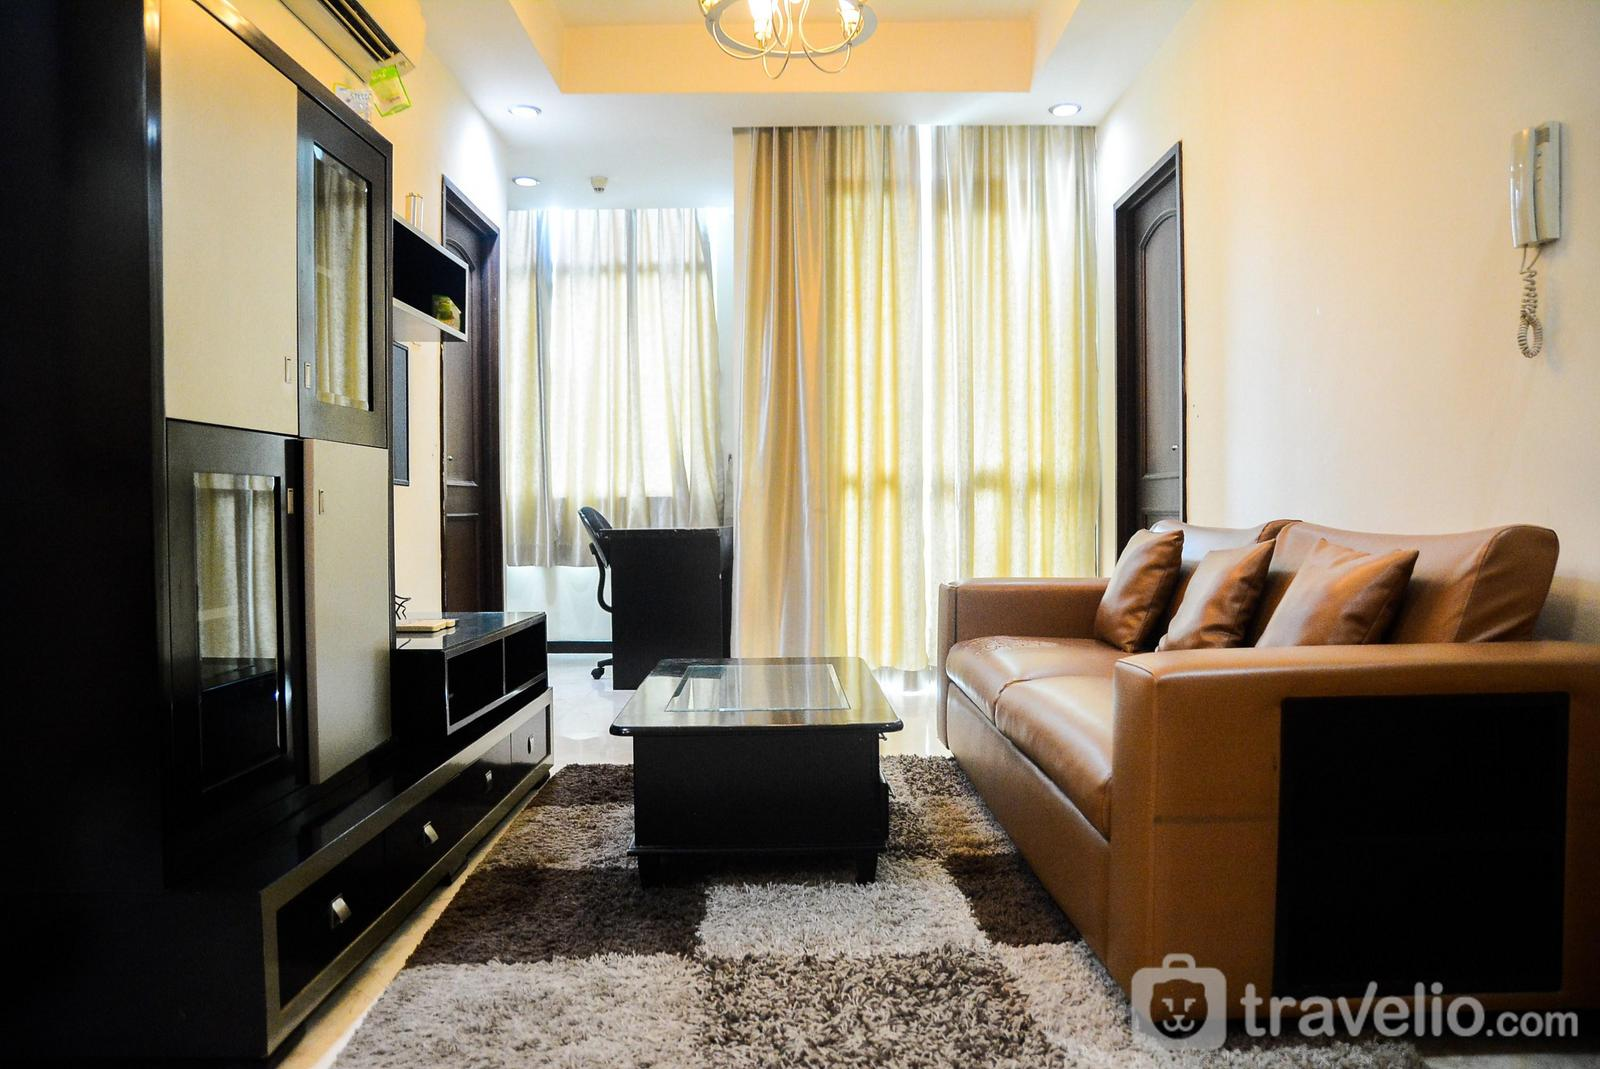 Bellagio Residence - Strategic 2BR Apartment at Bellagio Residence By Travelio